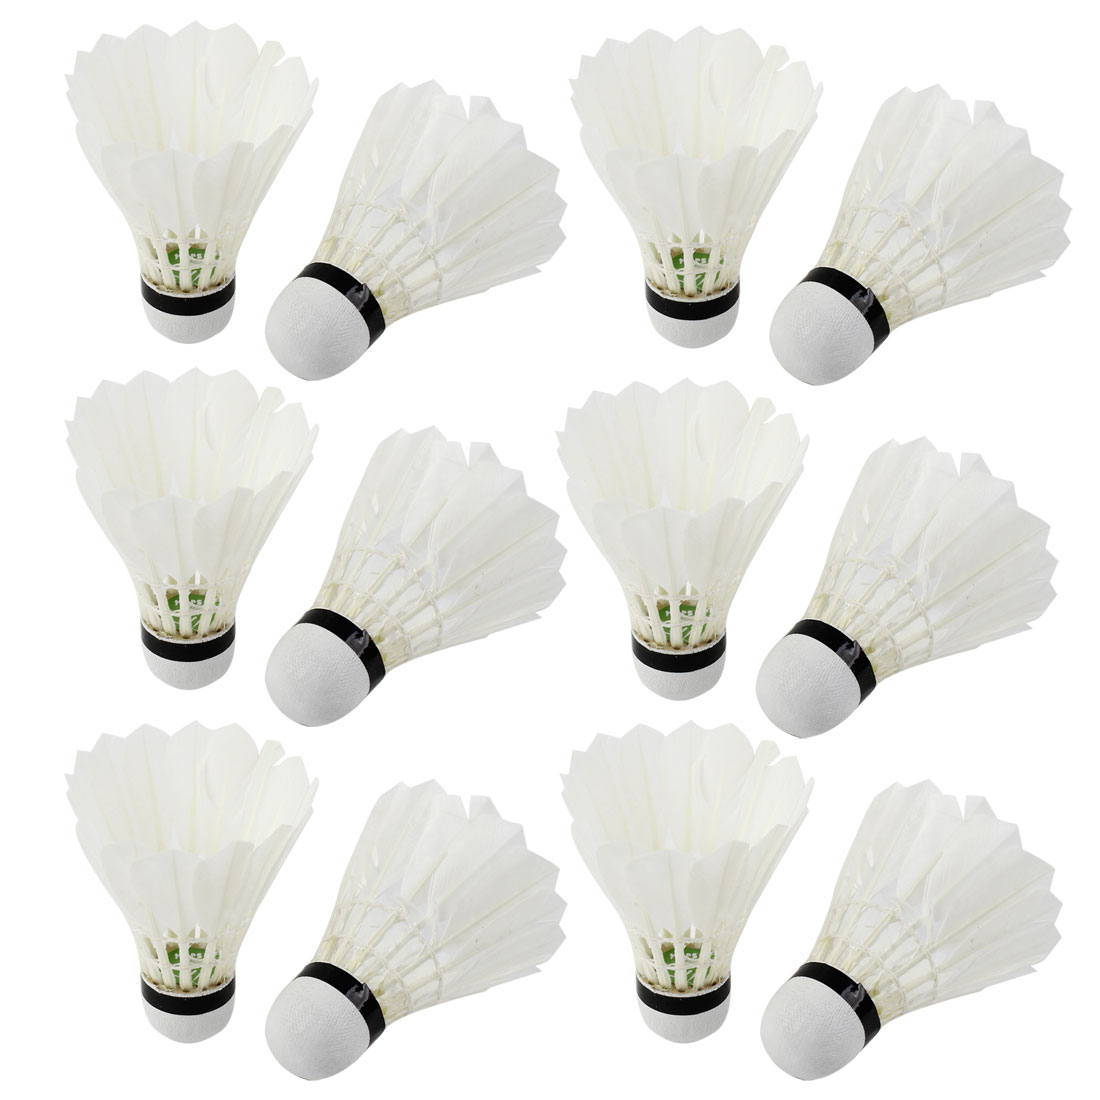 Sports Game Training Goose Feather Foam Bottom Shuttlecocks Badminton White x 12